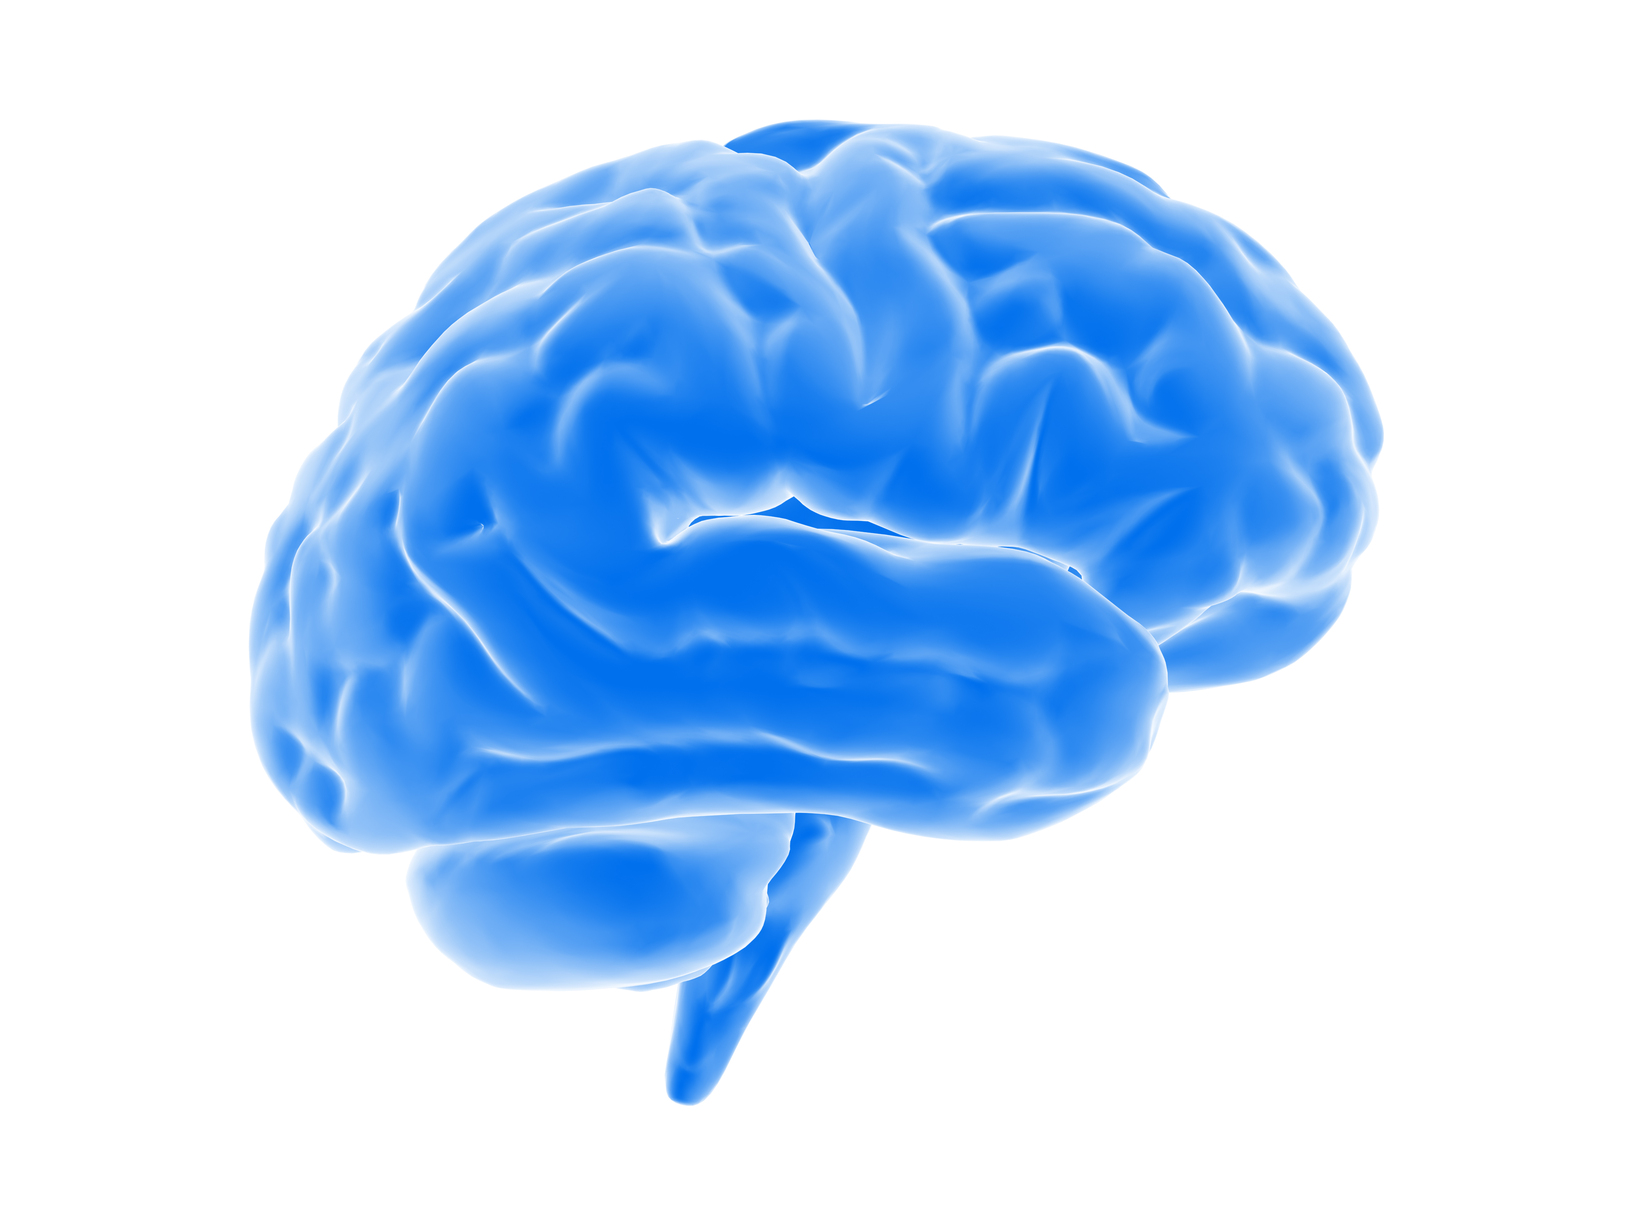 Stuck brain clipart svg transparent library How your Brain Impacts Your Leadership - Charles Stone svg transparent library